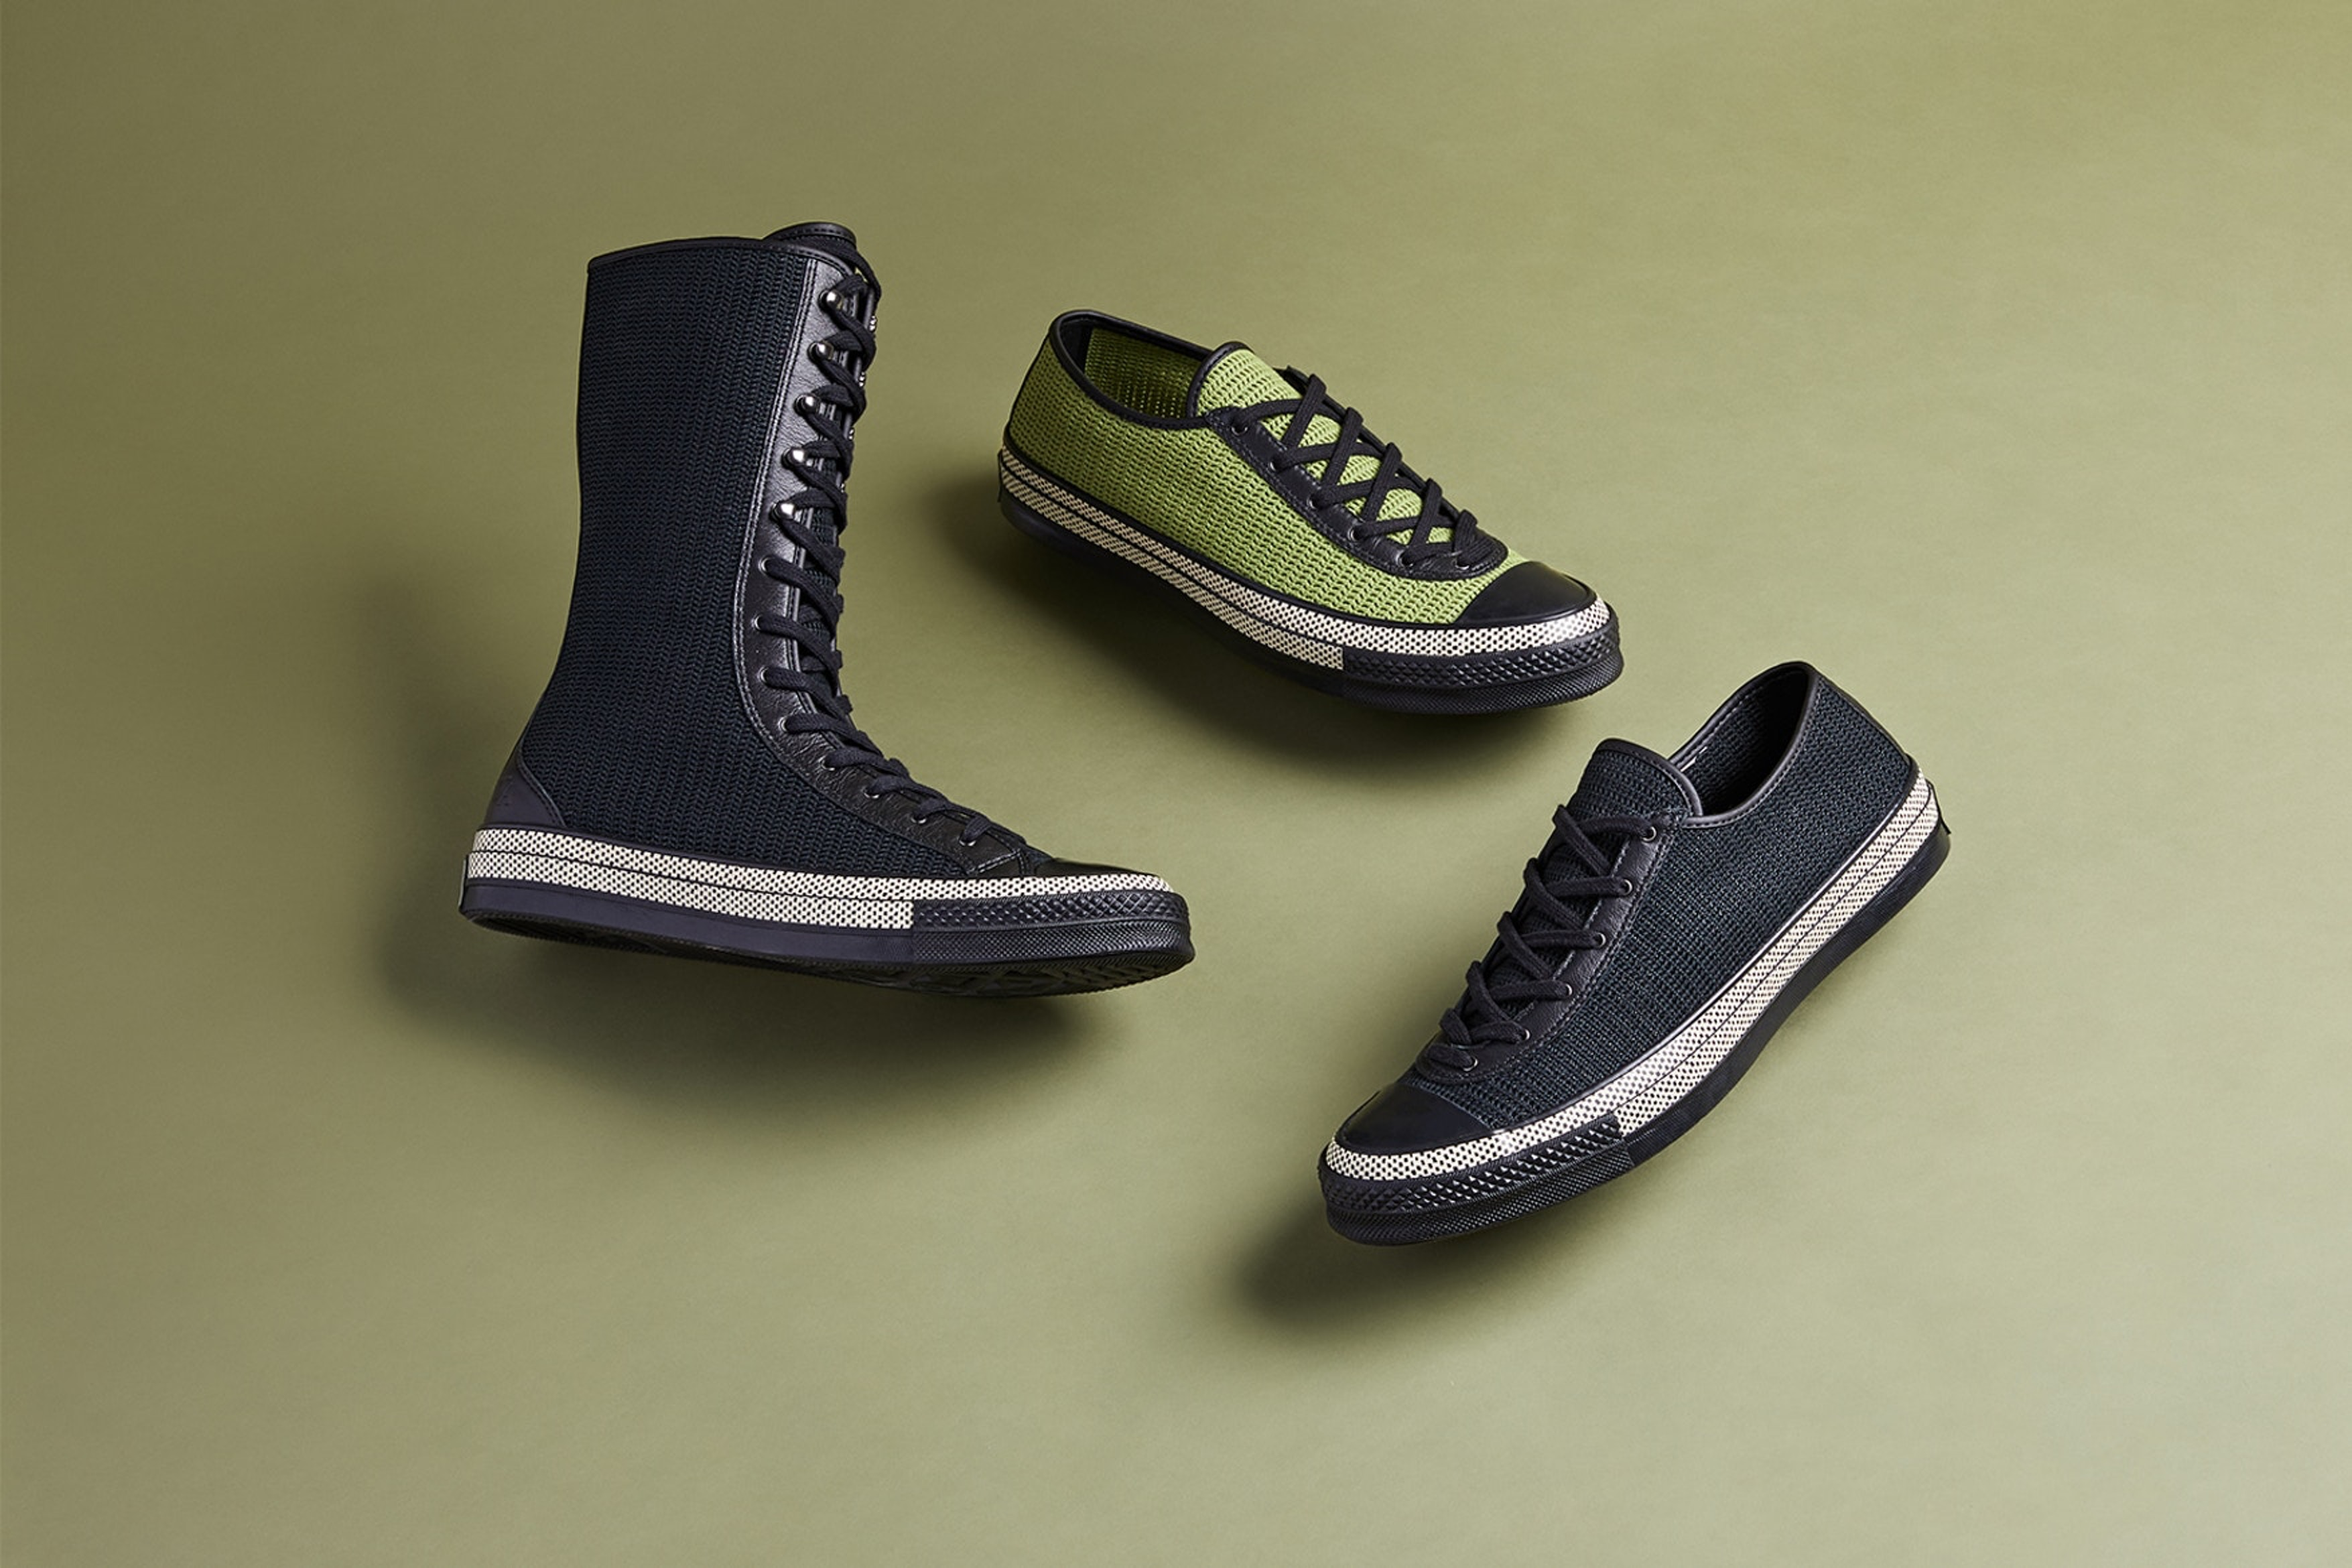 jw-anderson-converse-collaboration-new-classics-6